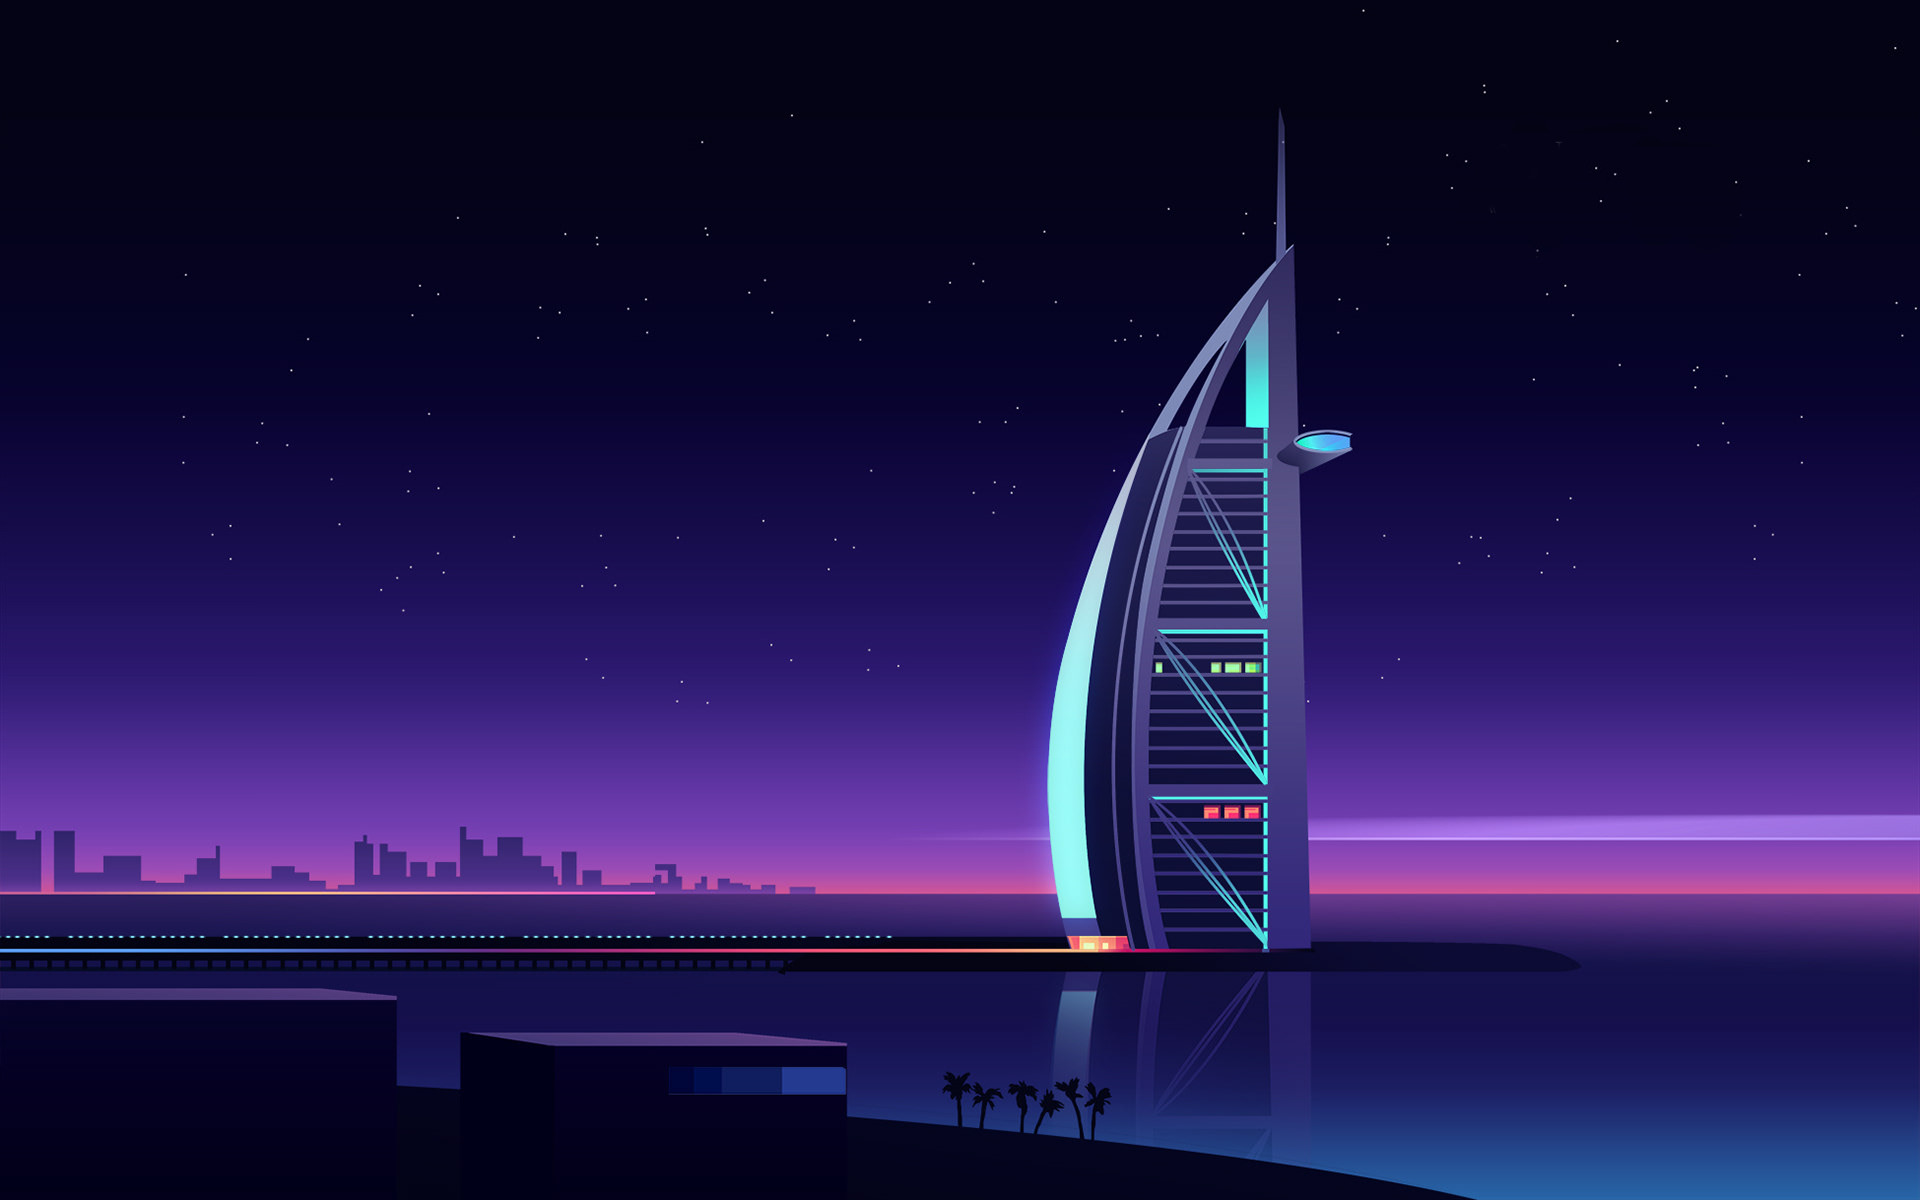 640x960 dubai burj al arab hotel iphone 4 iphone 4s hd 4k - Burj al arab wallpaper iphone ...